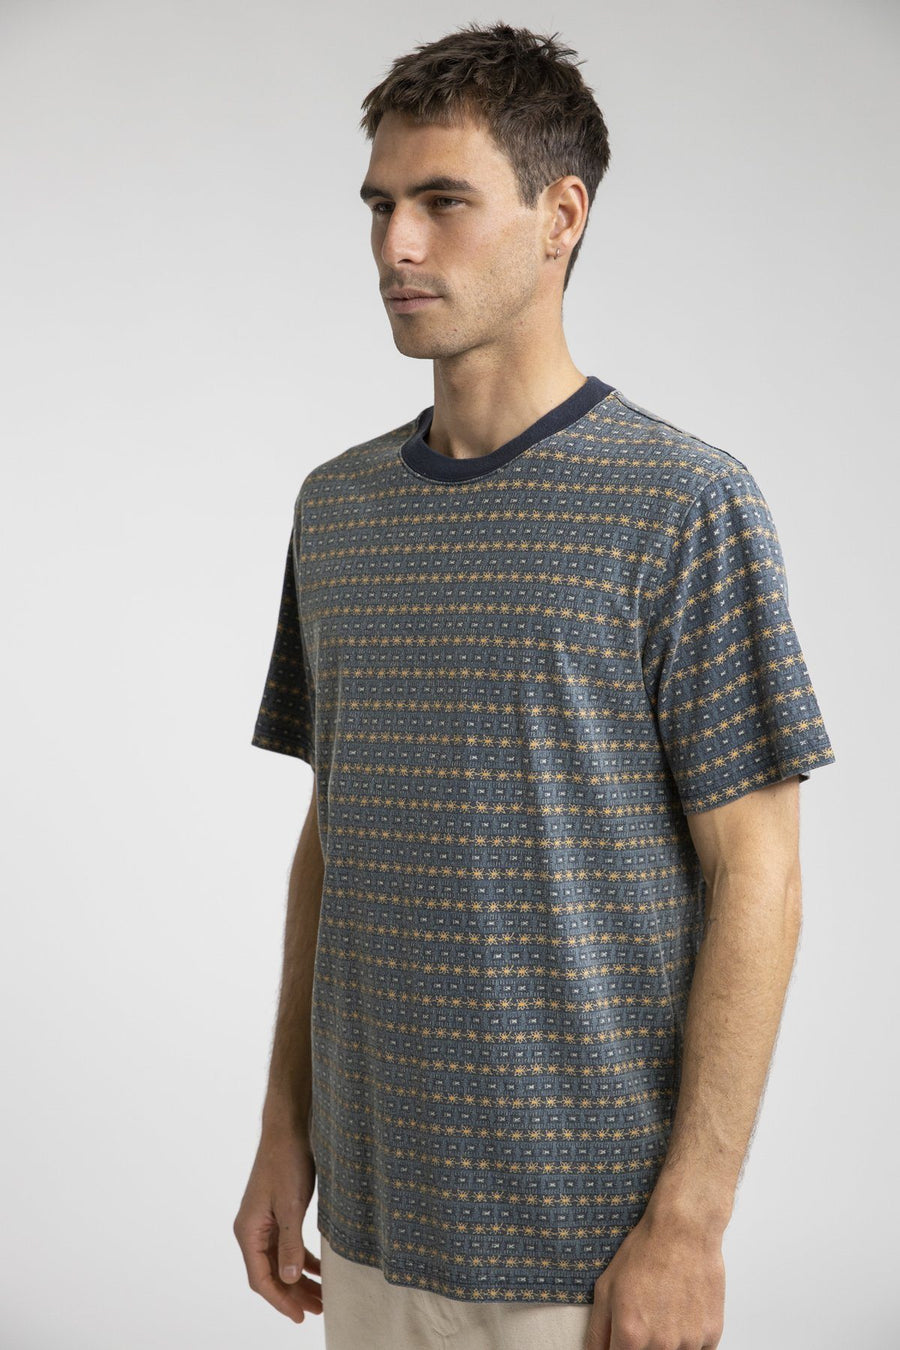 RHYTHM Tribe Stripe T-Shirt Indigo MENS APPAREL - Men's Short Sleeve T-Shirts Rhythm